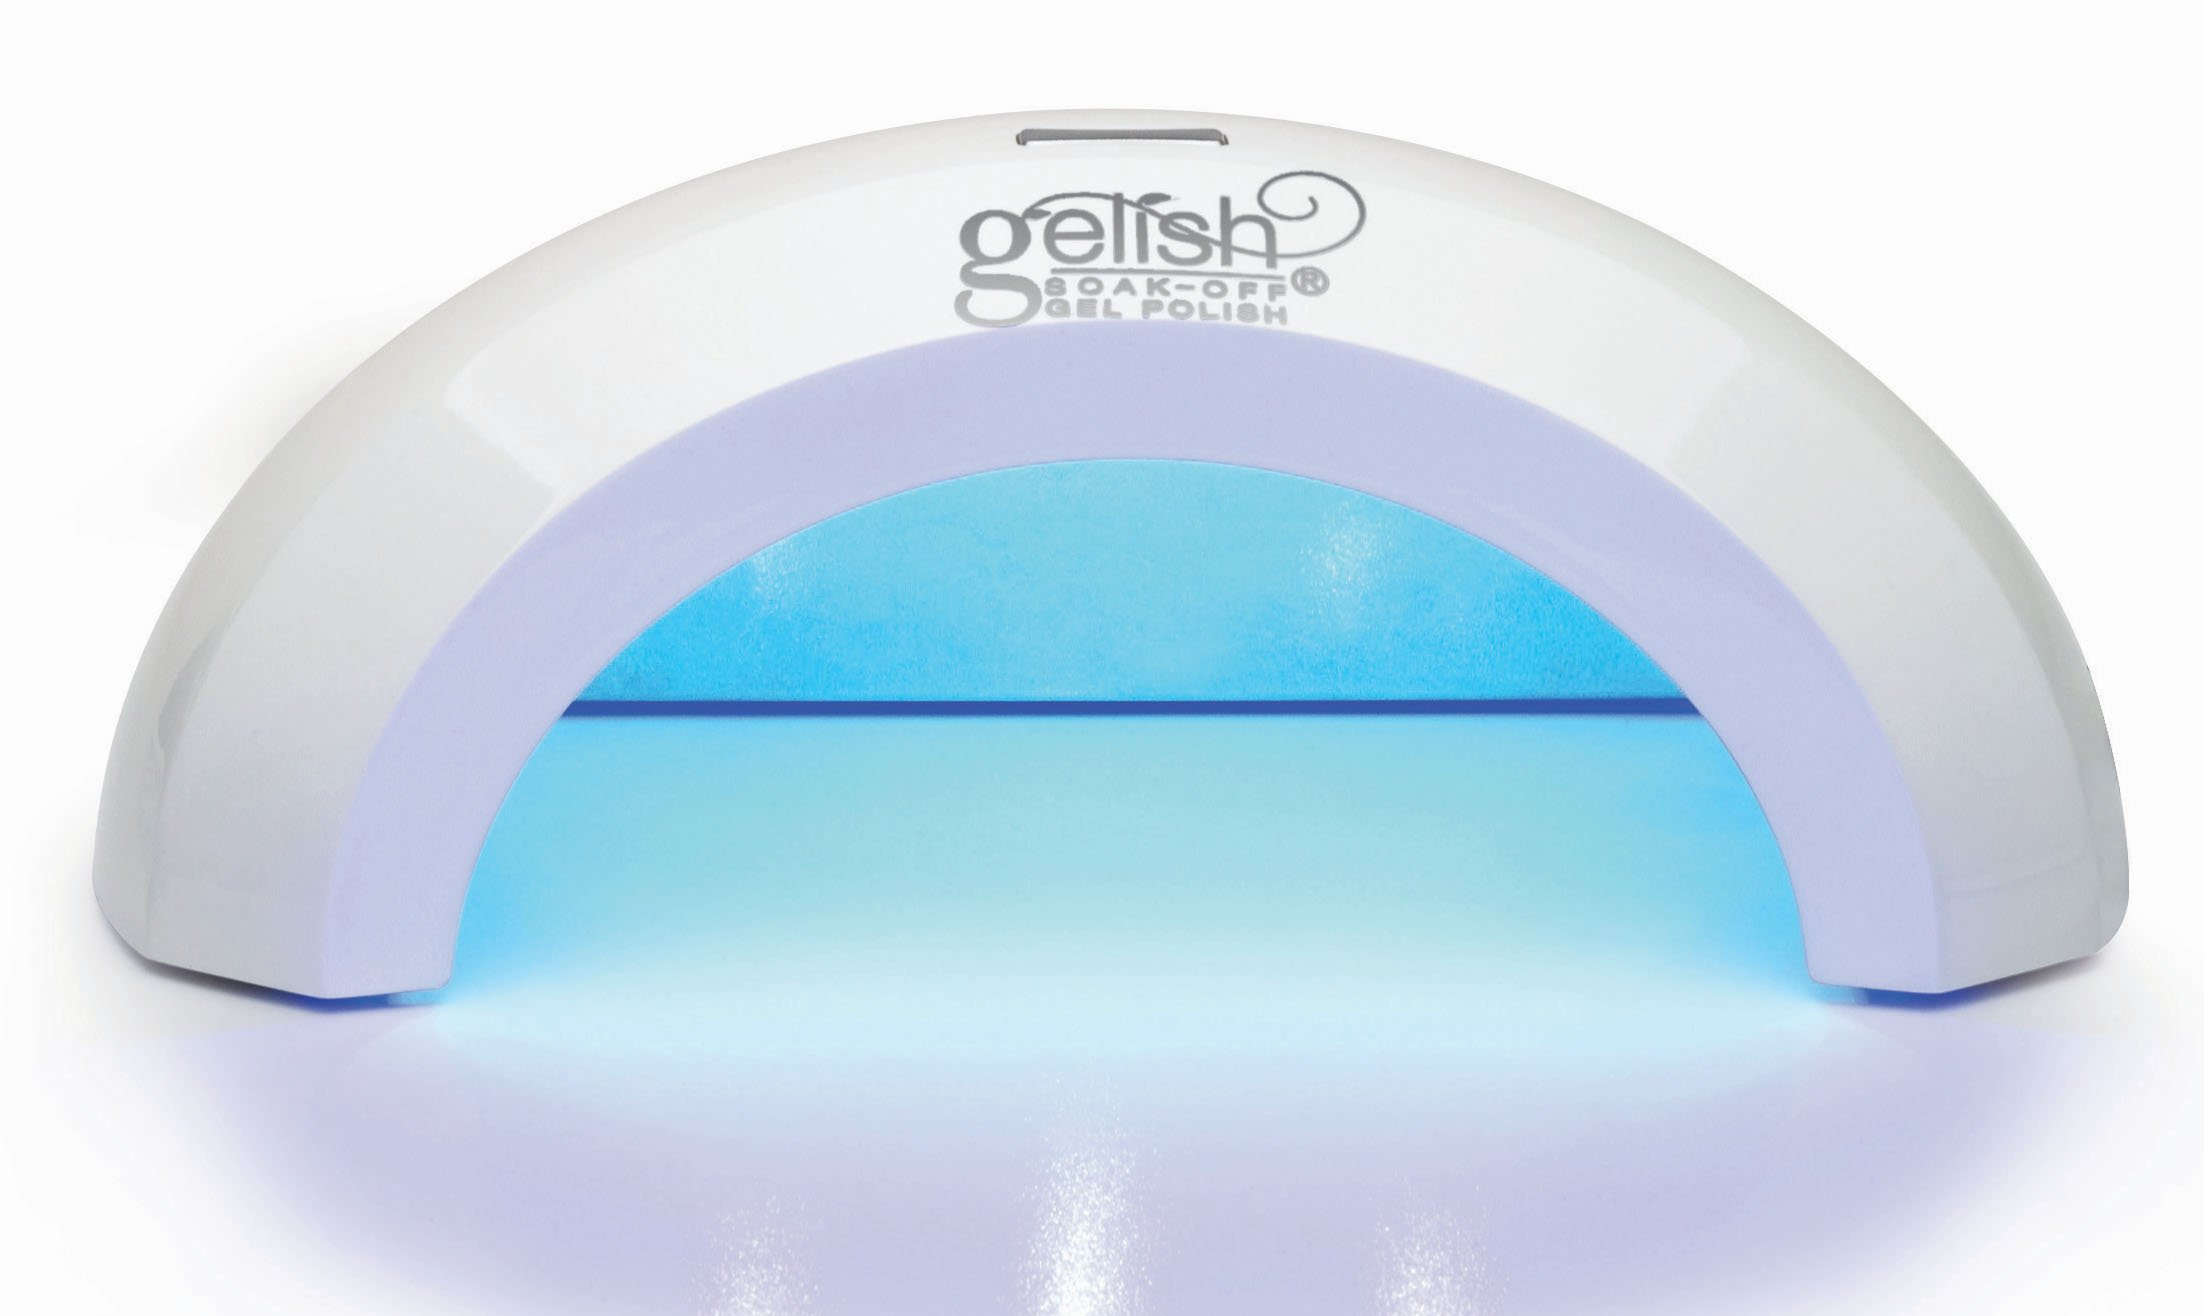 Gelish 724860 Mini LED GEL Polish Nail Manicure Pro 45 Curing Light ...